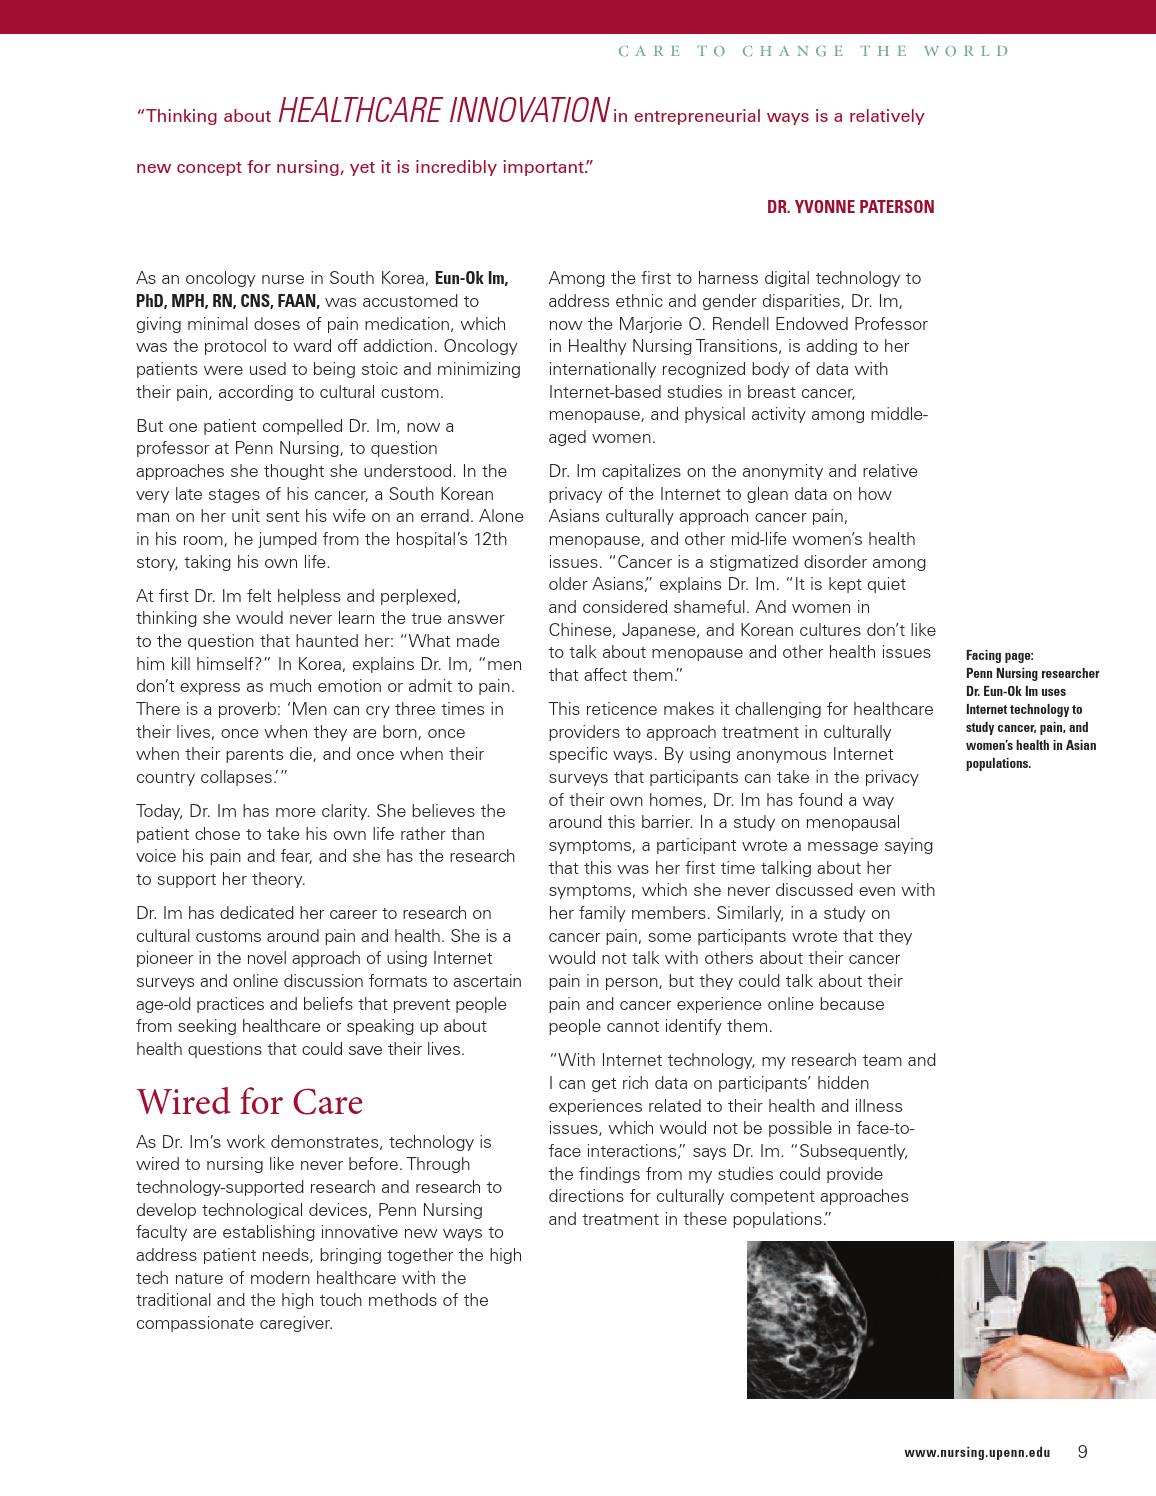 Penn Nursing Upfront Spring 2012 By Pennnursing Issuu This Is How I39m Currently Wired